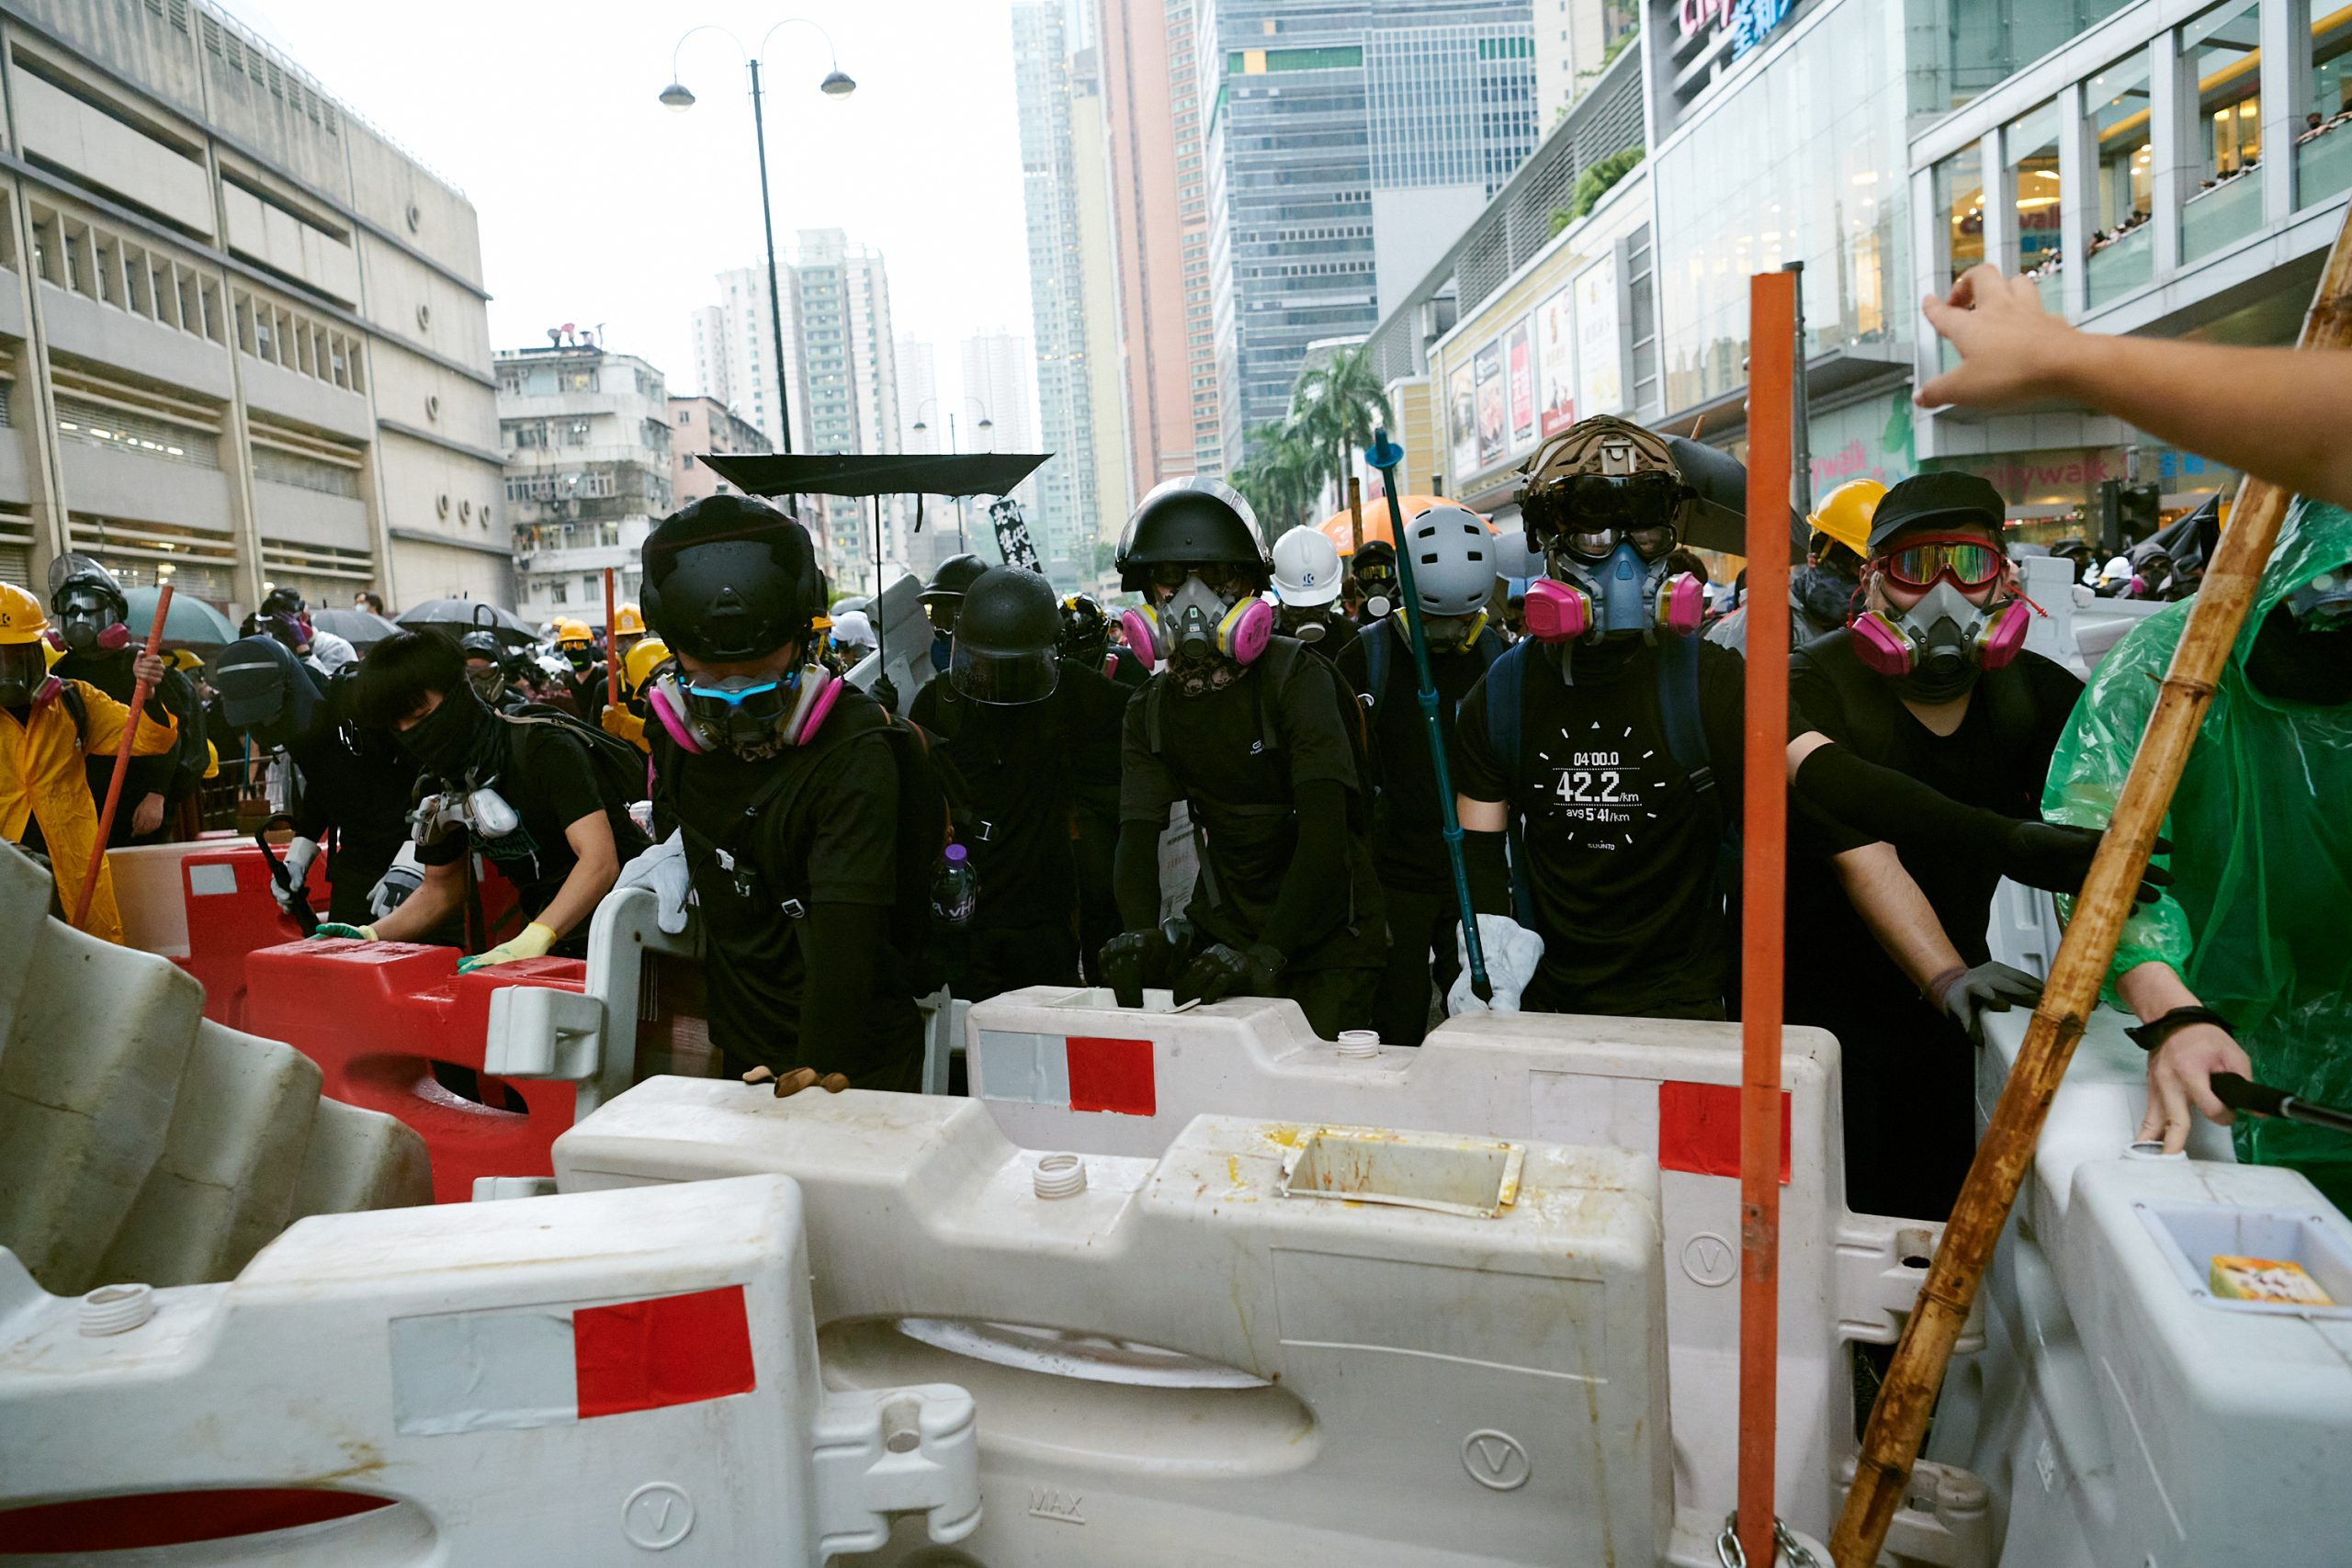 barricades gas masks anti-extradition protests 2019